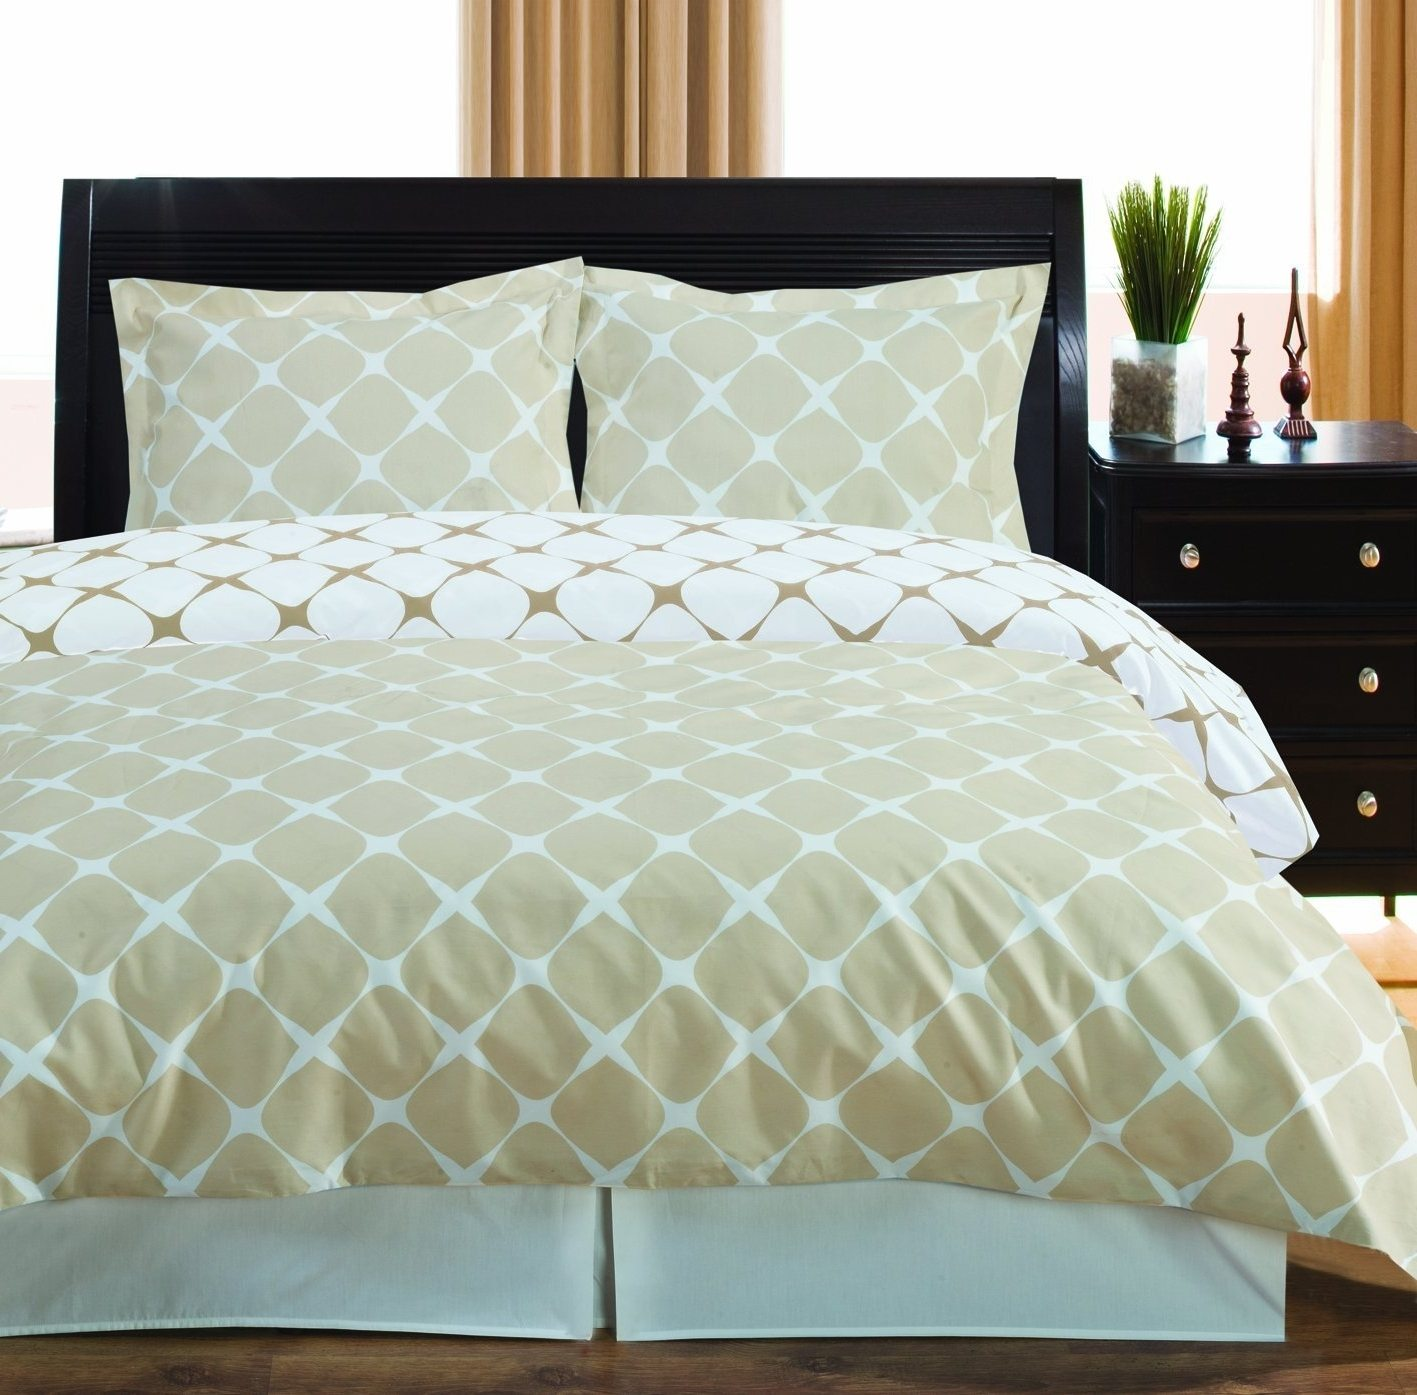 Queen Size Bed Skirts & Dust Ruffles: Tie together your bedroom décor with an elegant bed skirt.